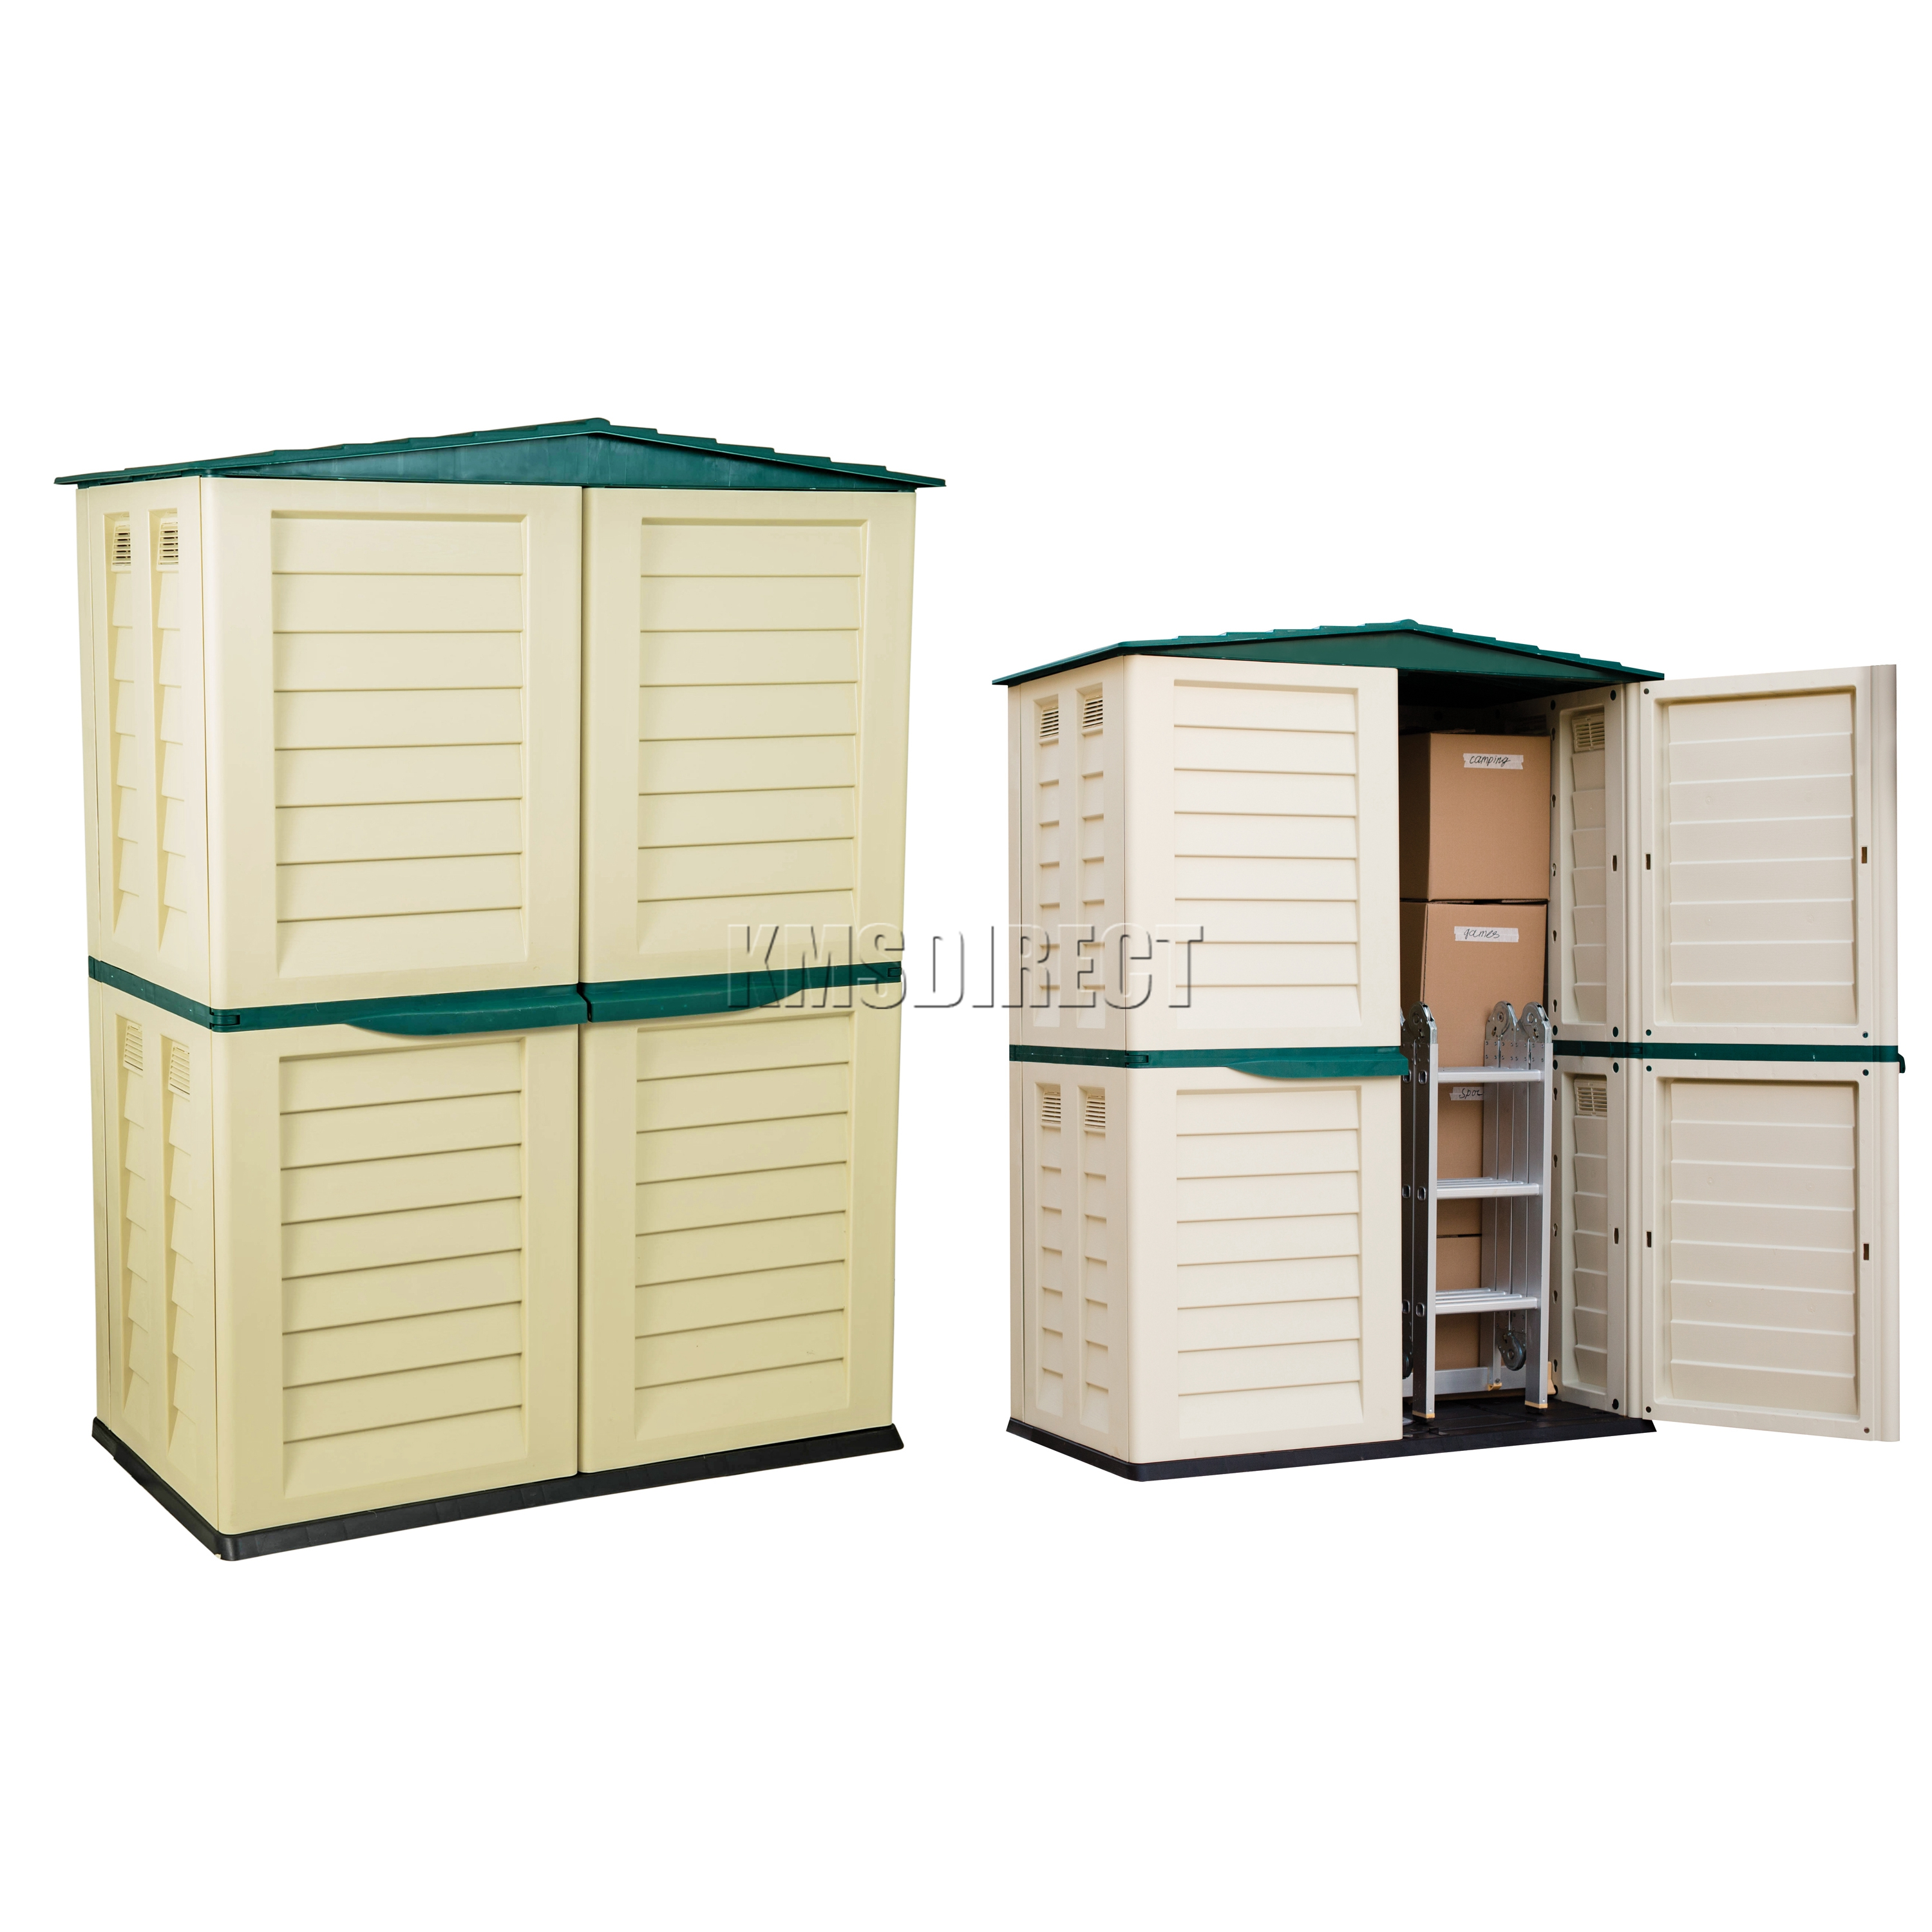 Outside Storage Units: Starplast Outdoor Plastic Garden Tall Shed Box Storage